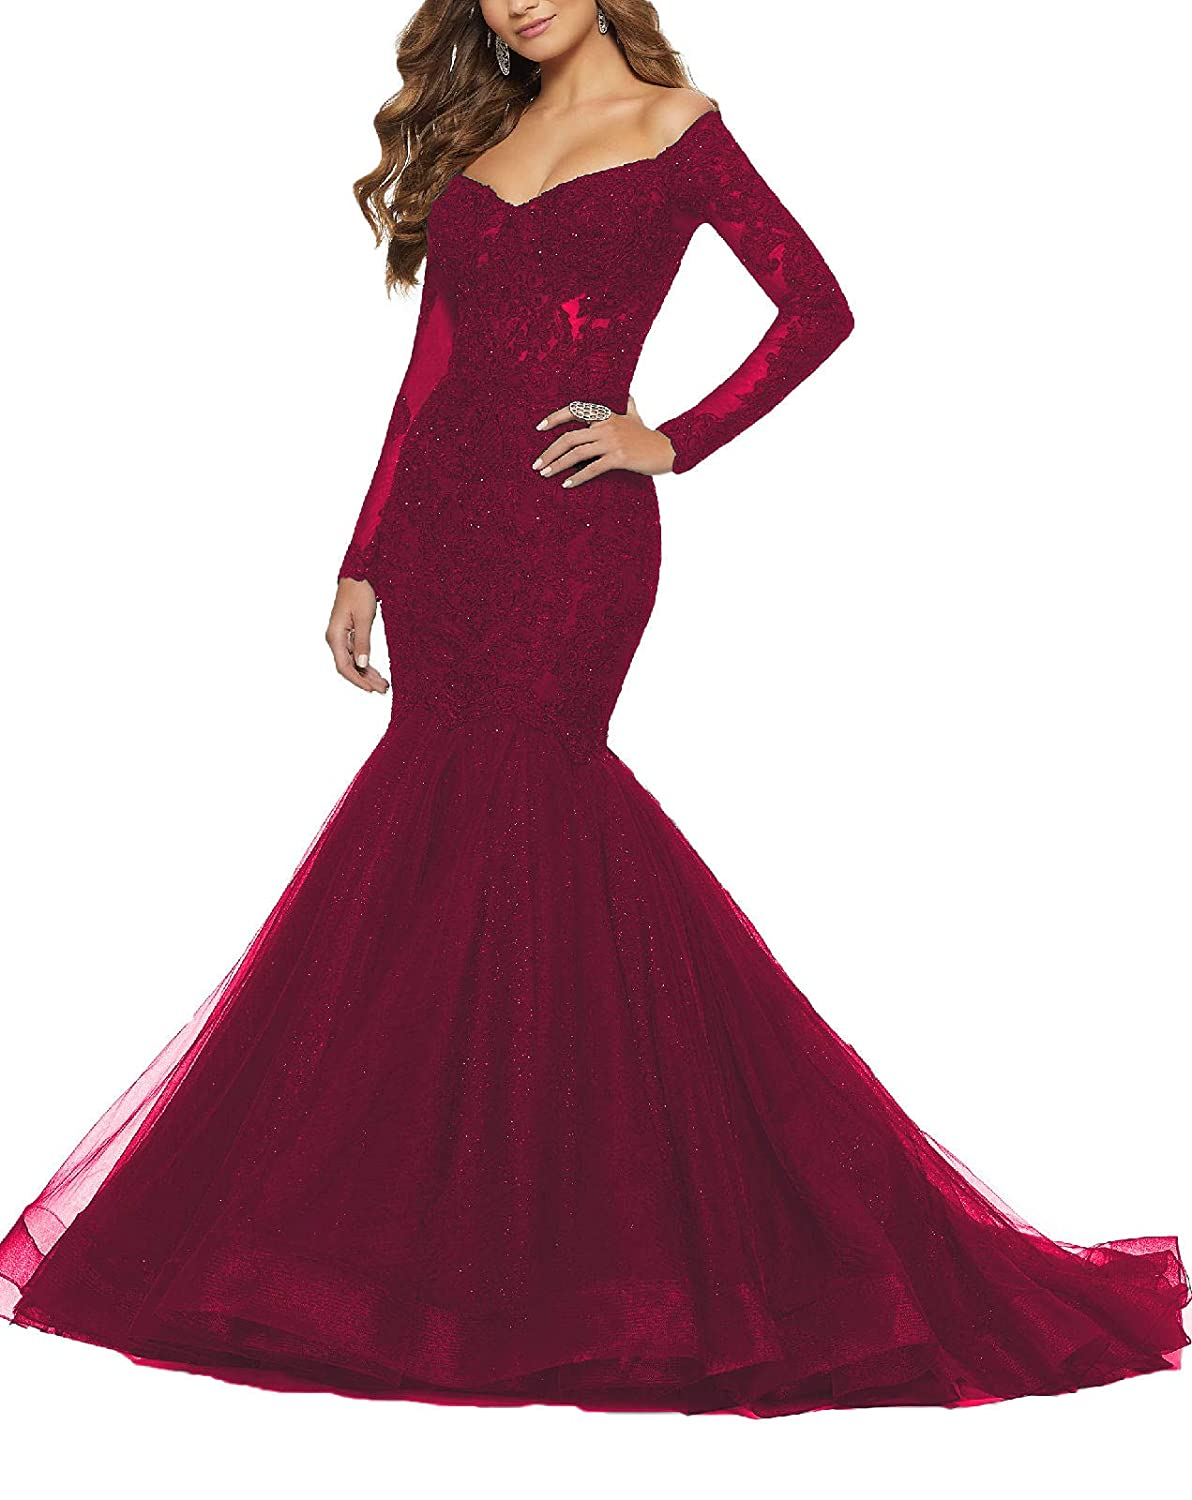 Burgundy Yisha Bello Women's Off The Shoulder Long Sleeve Mermaid Pro Dress Lace Applique Beaded Evening Dress Formal Ball Gowns